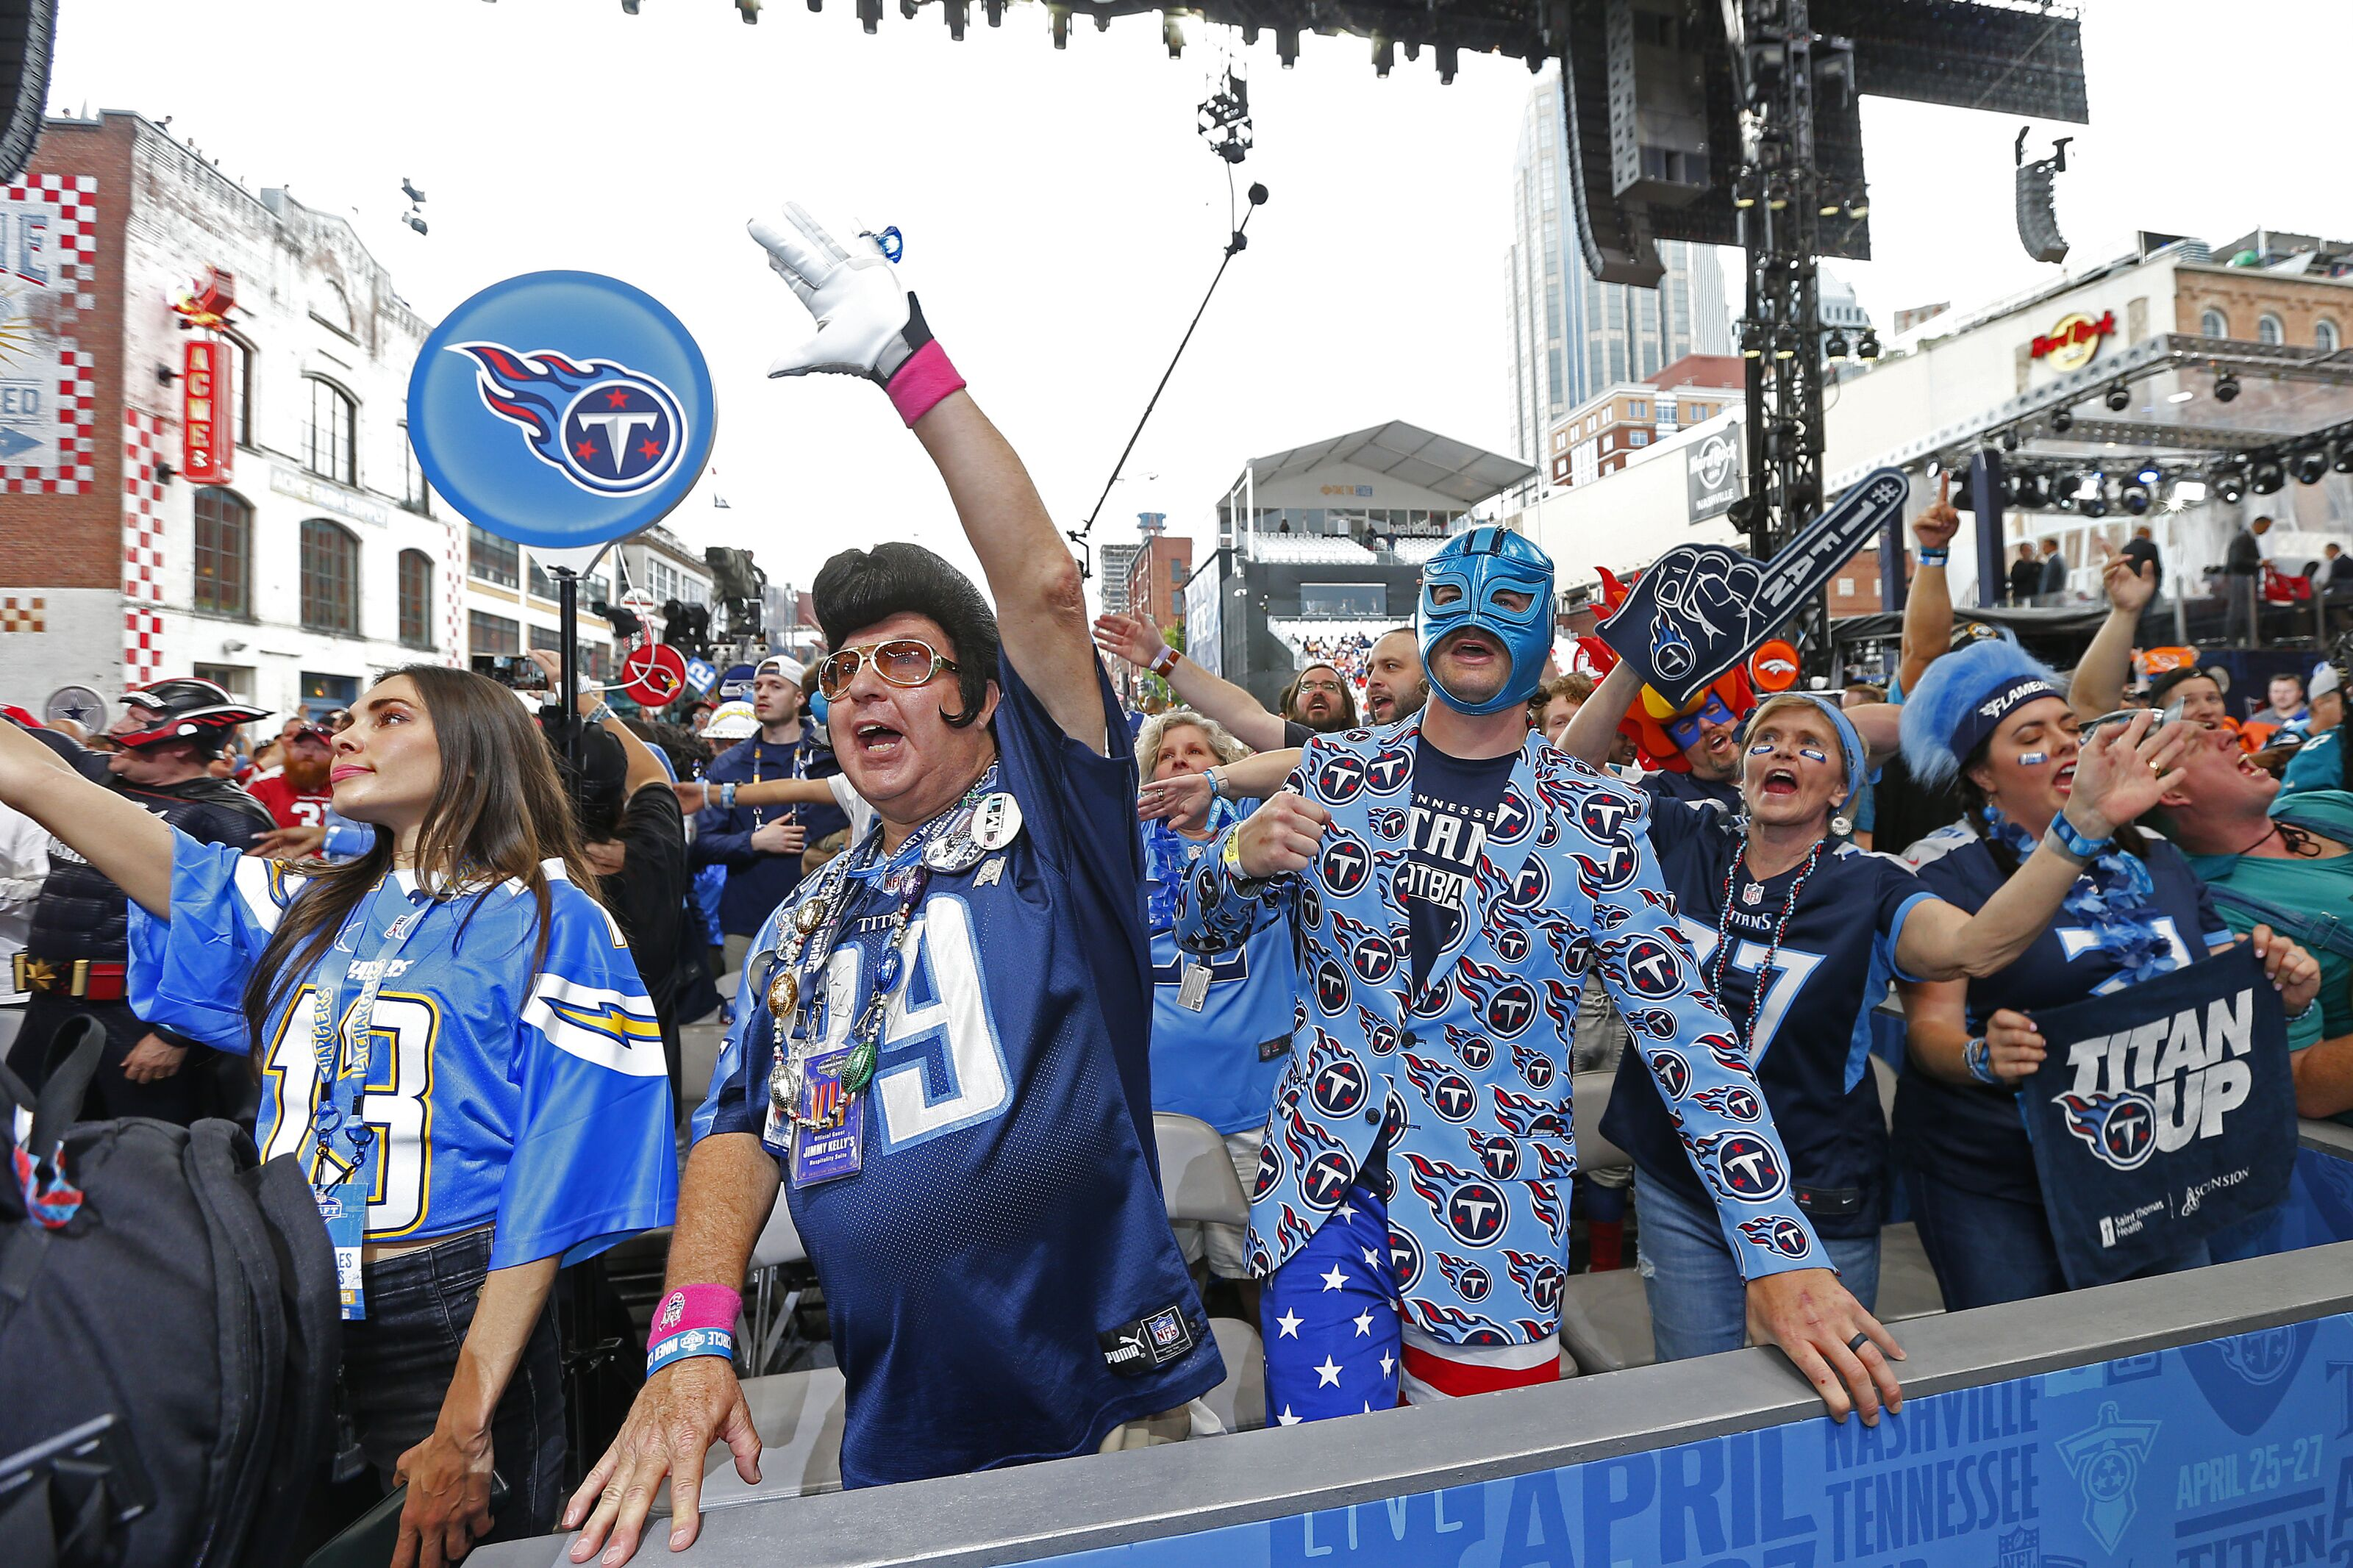 Tennessee Titans fanbase ranked as one of NFL's worst for 2019